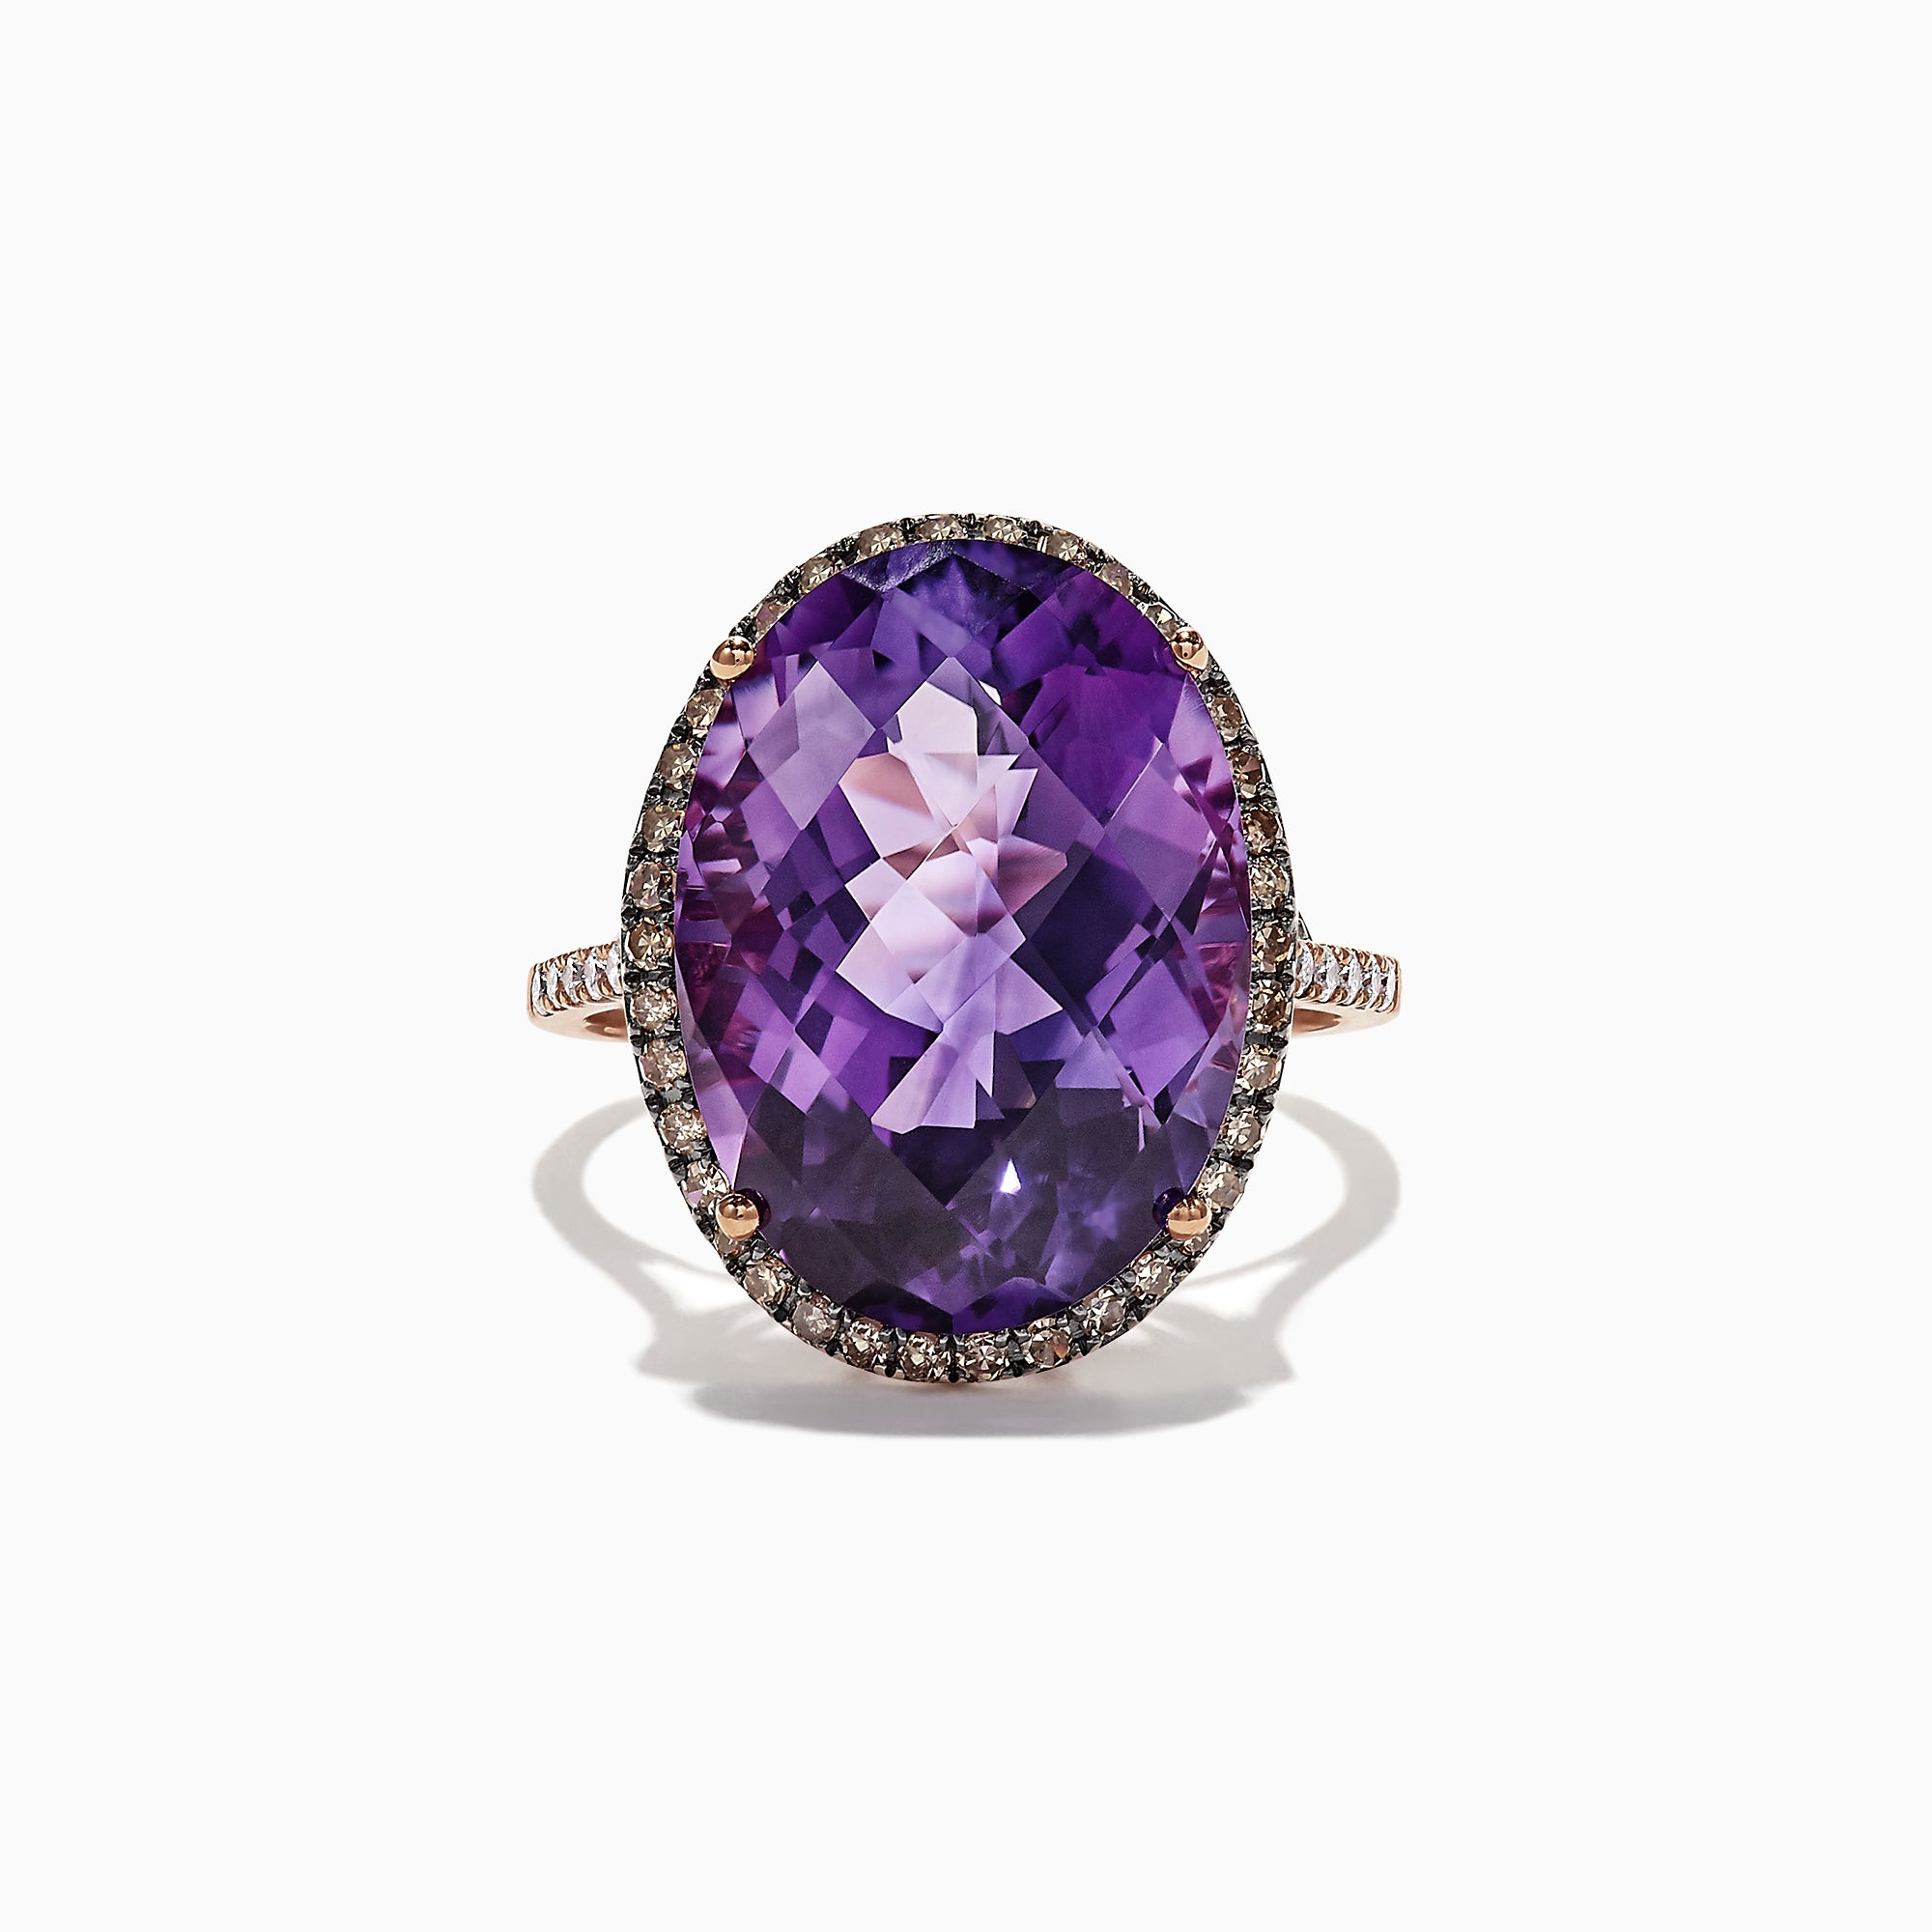 Effy 14K Rose Gold Amethyst and Diamond Ring, 12.57 TCW